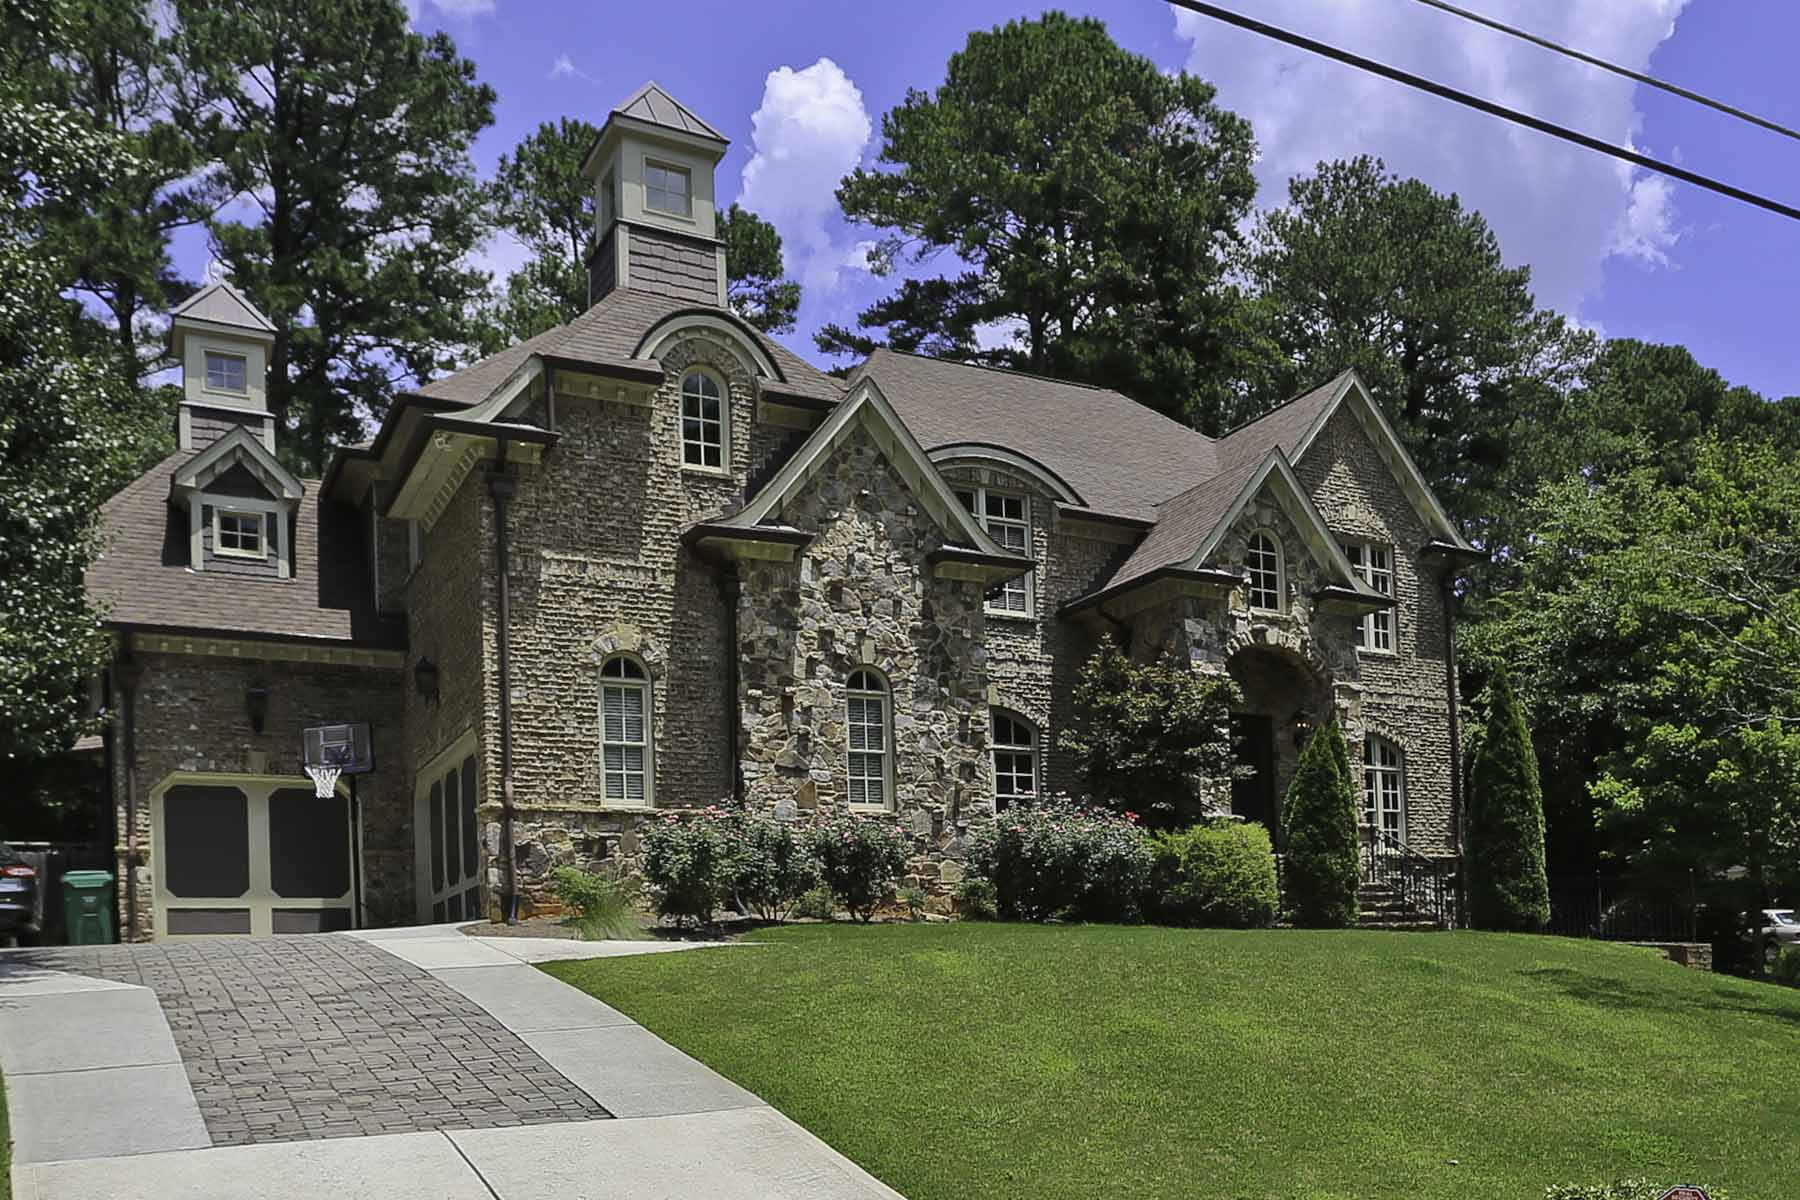 Villa per Affitto alle ore Executive Home with all the Bells and Whistles 3006 Lavista Court A Decatur, Georgia 30033 Stati Uniti